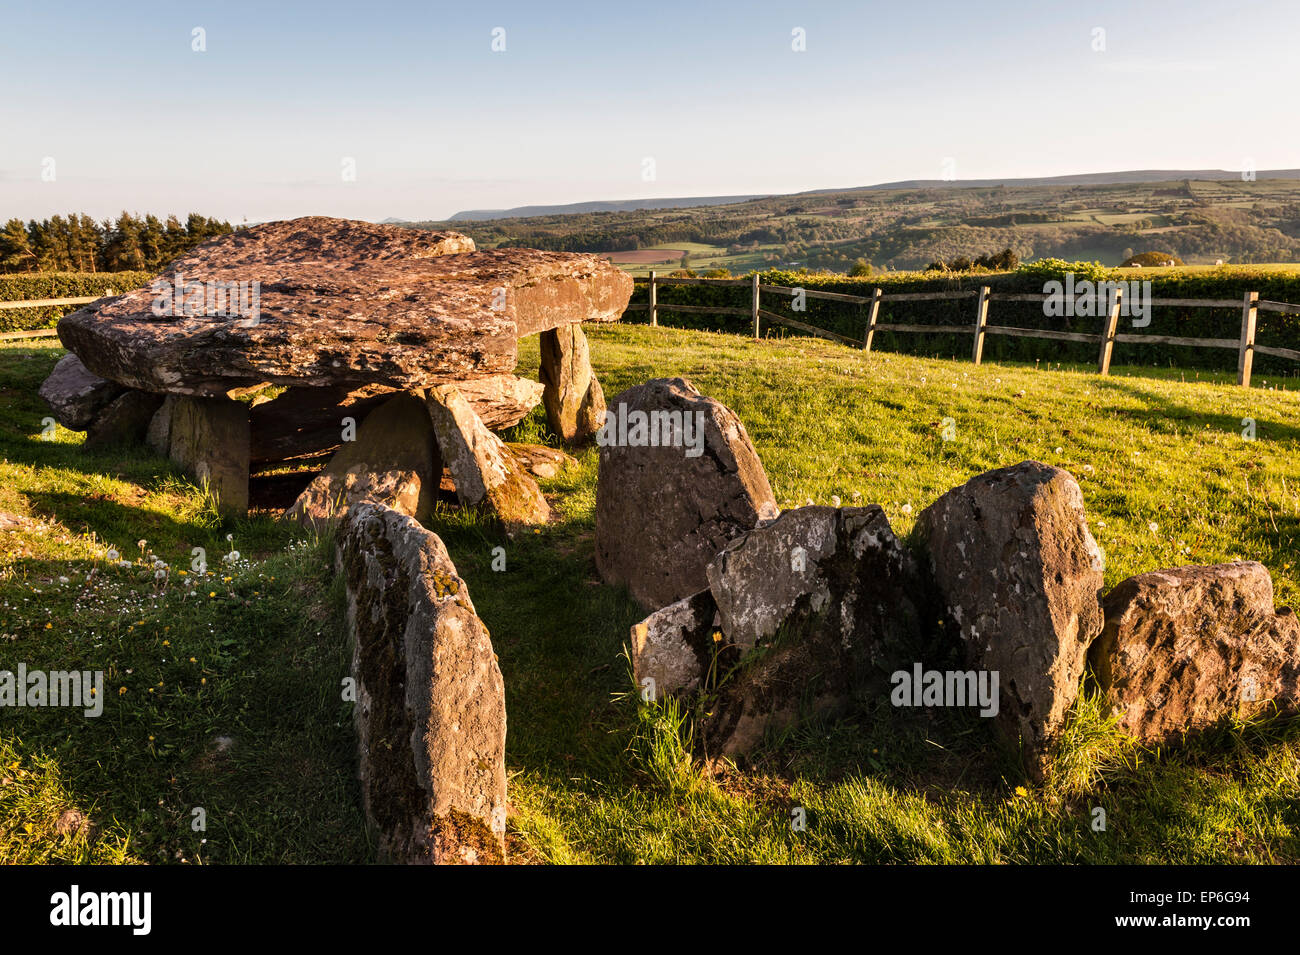 Arthur's Stone, Dorstone, Herefordshire, UK. Neolithic chambered tomb (dolmen) overlooking the Golden Valley - Stock Image